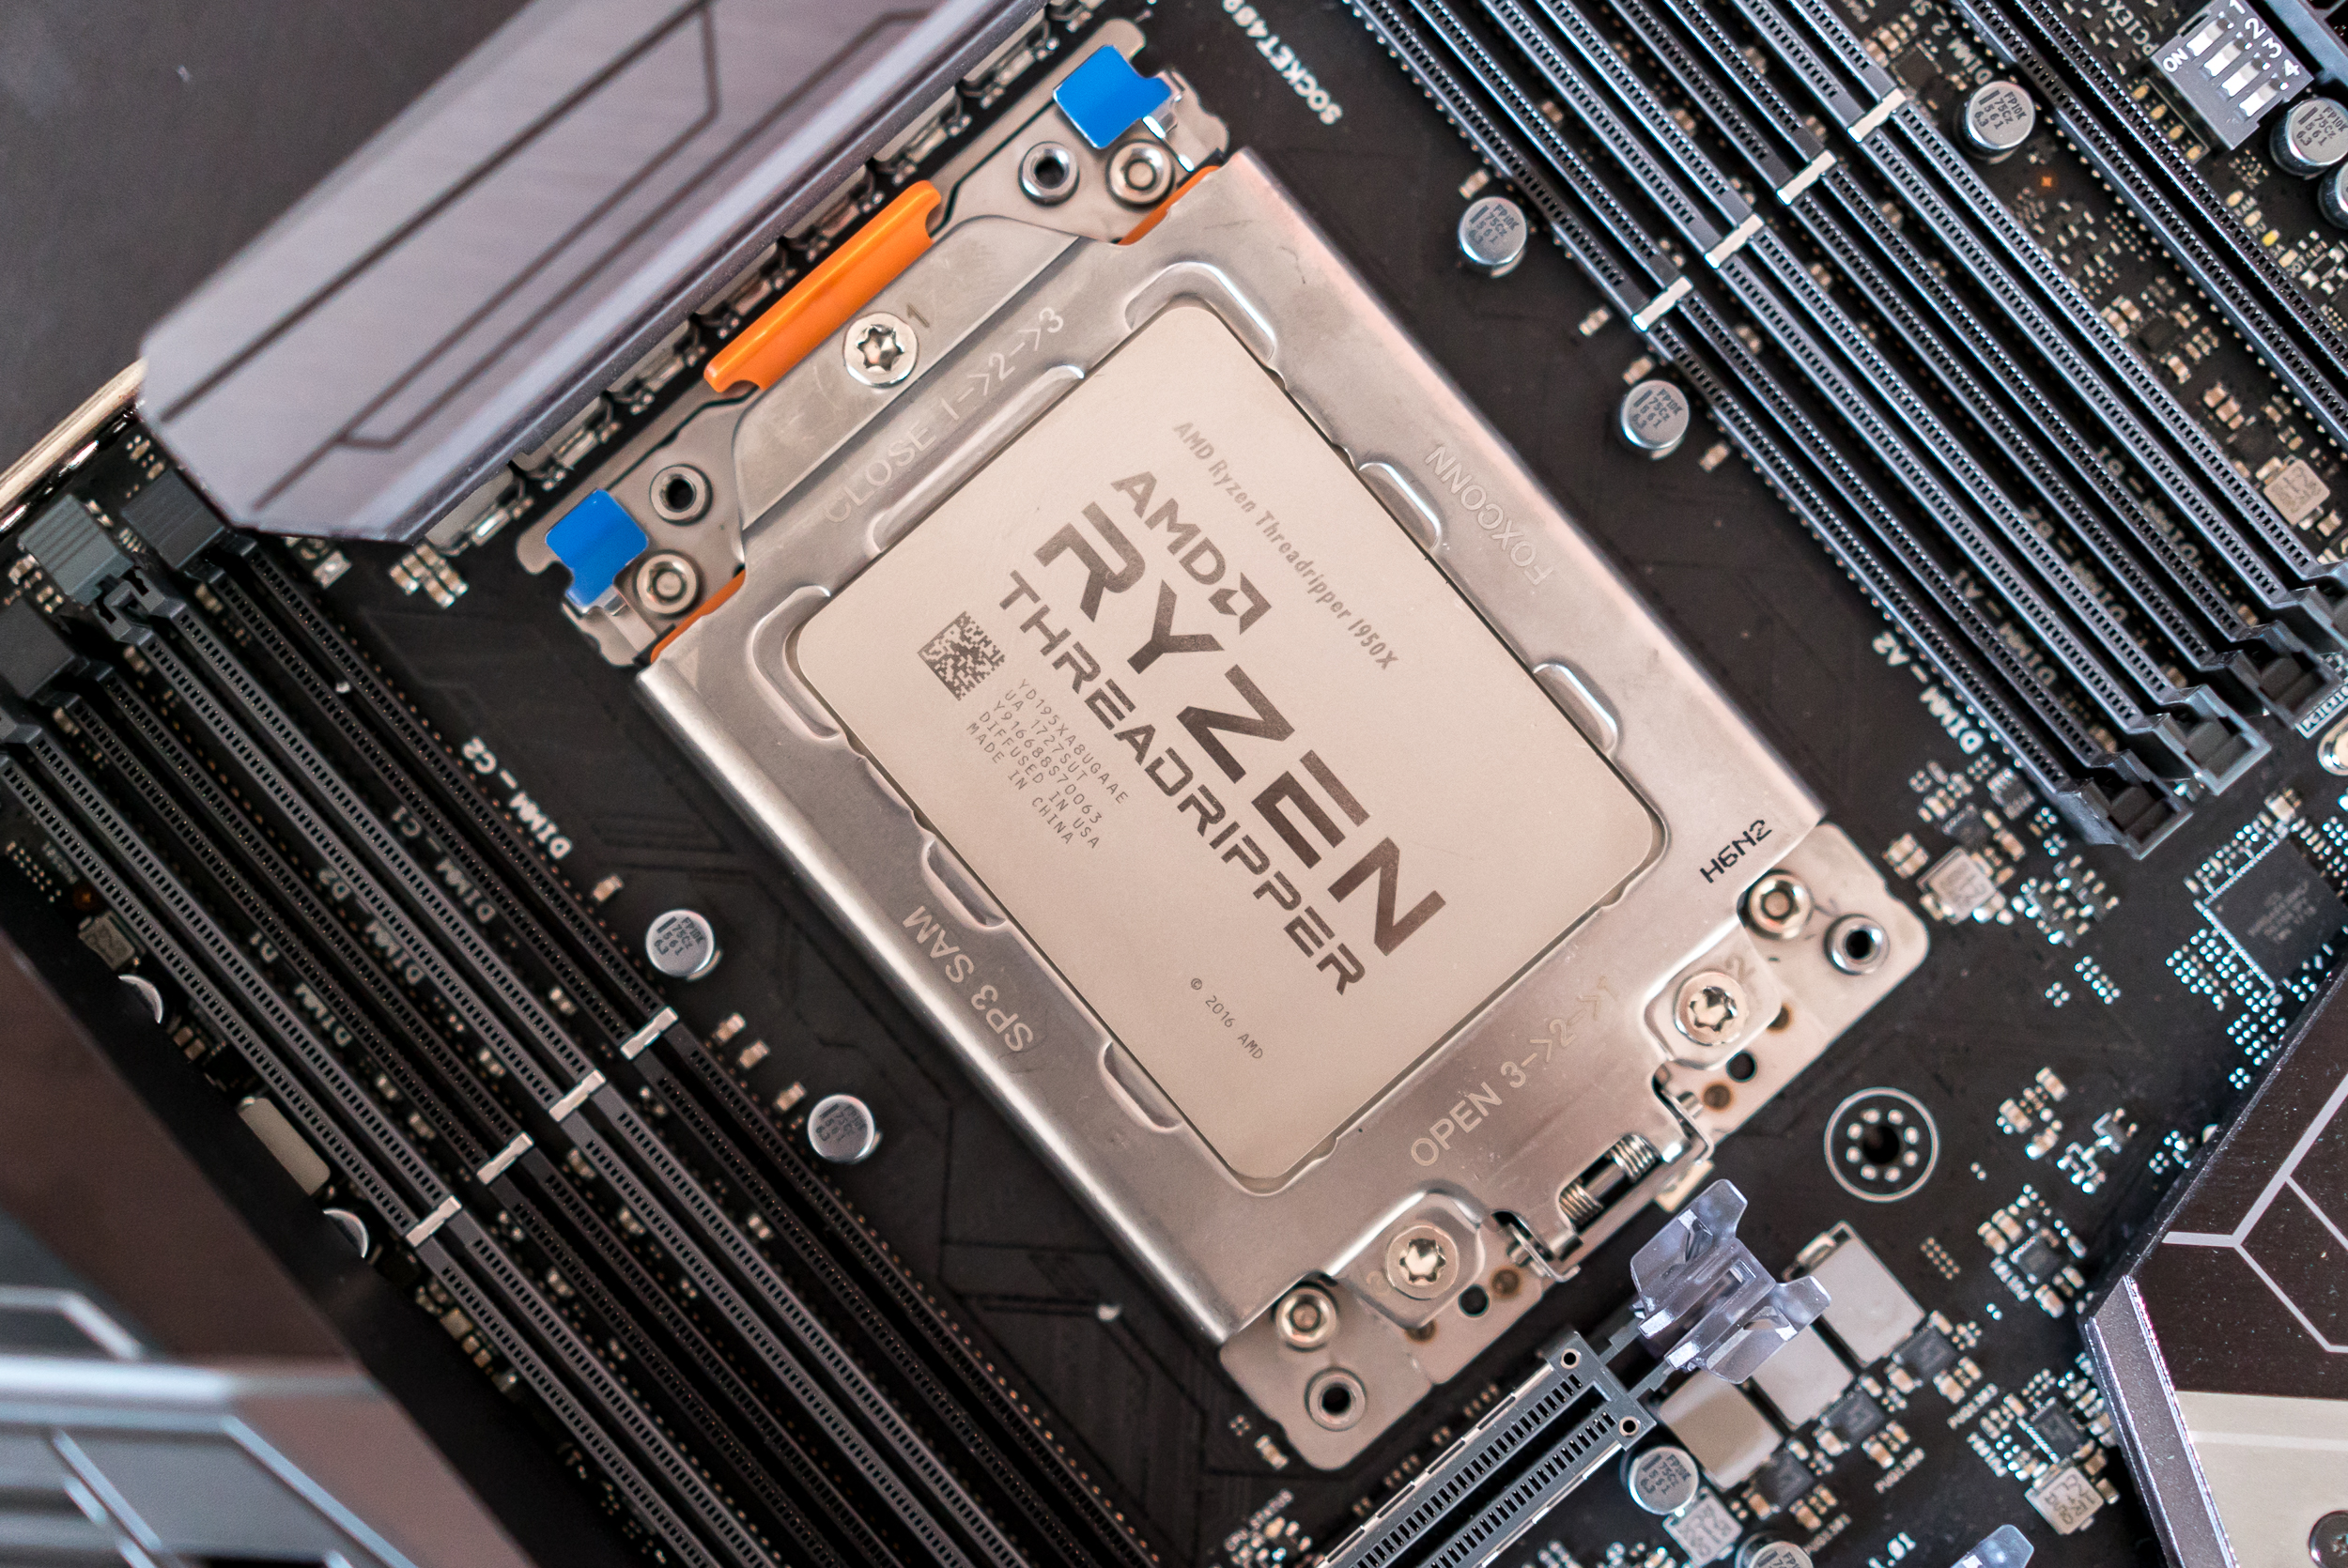 AMD Threadripper 1950X review: Better than Intel in almost every way